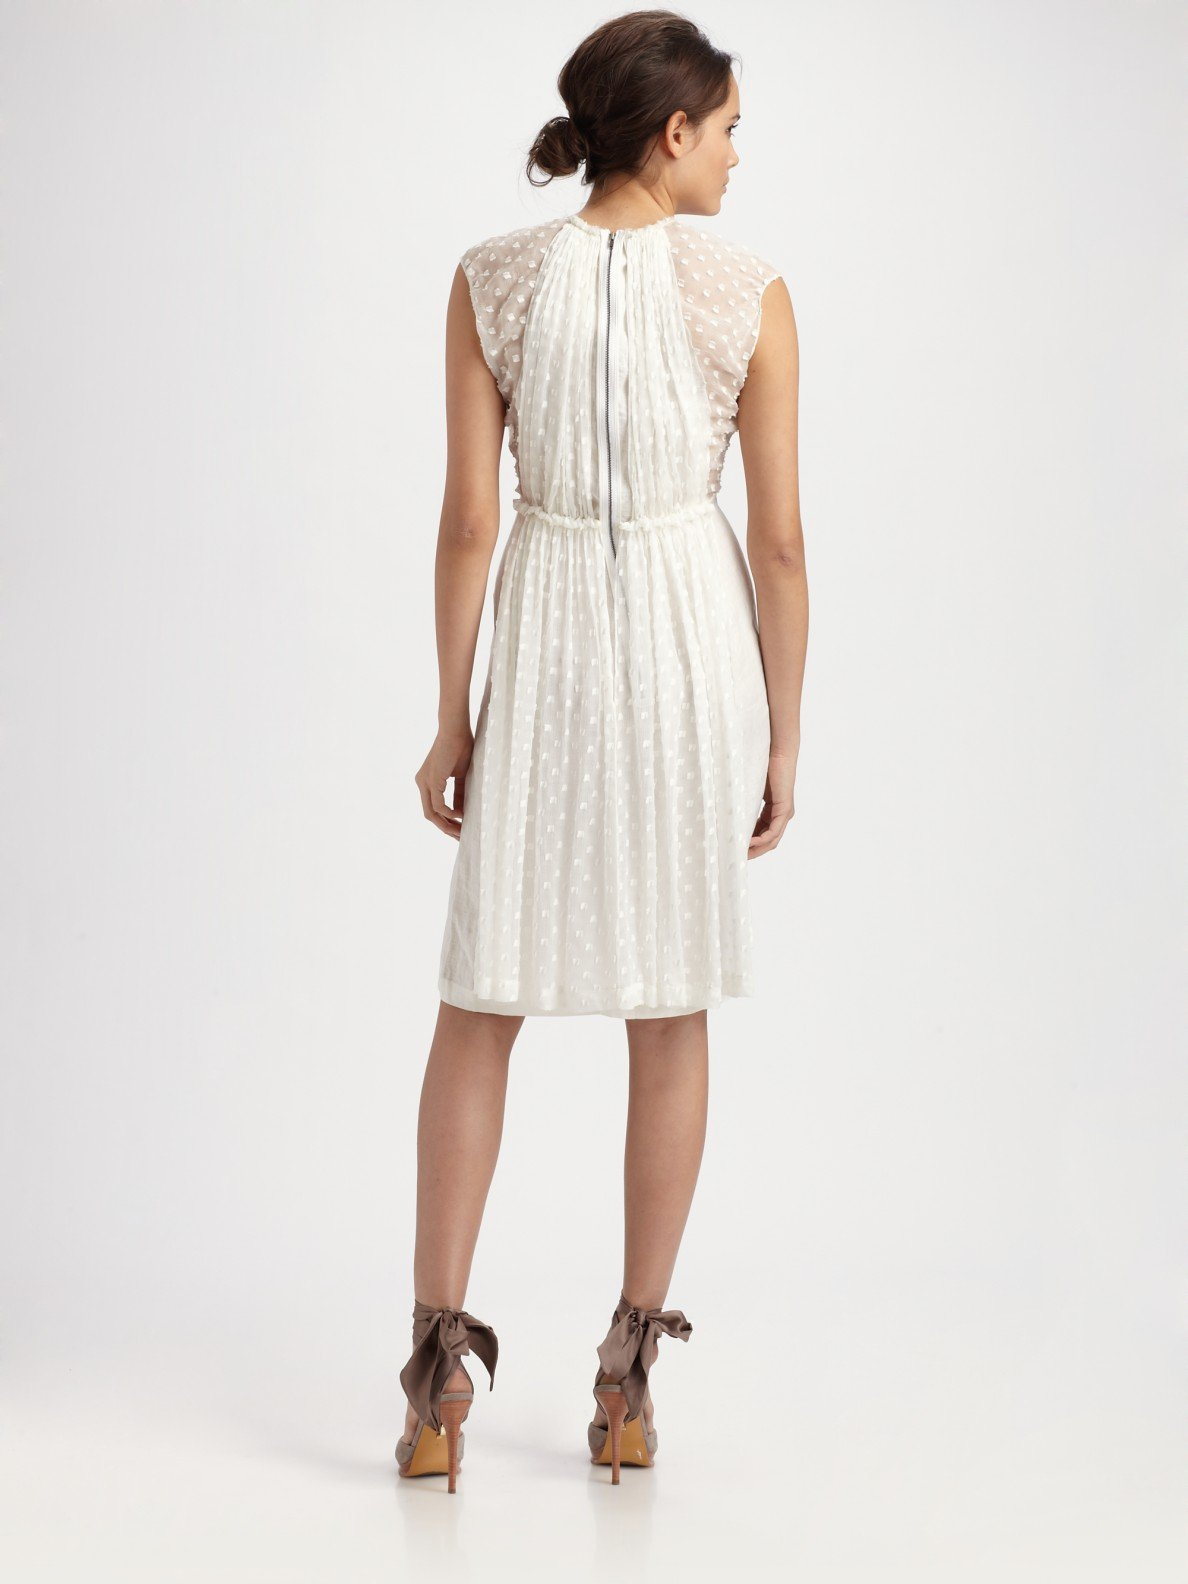 Limited Edition For Sale Grendel Woven Cotton Dress - Womens - White Rachel Comey Wholesale Price Online Outlet Finishline Marketable For Sale ICbVH